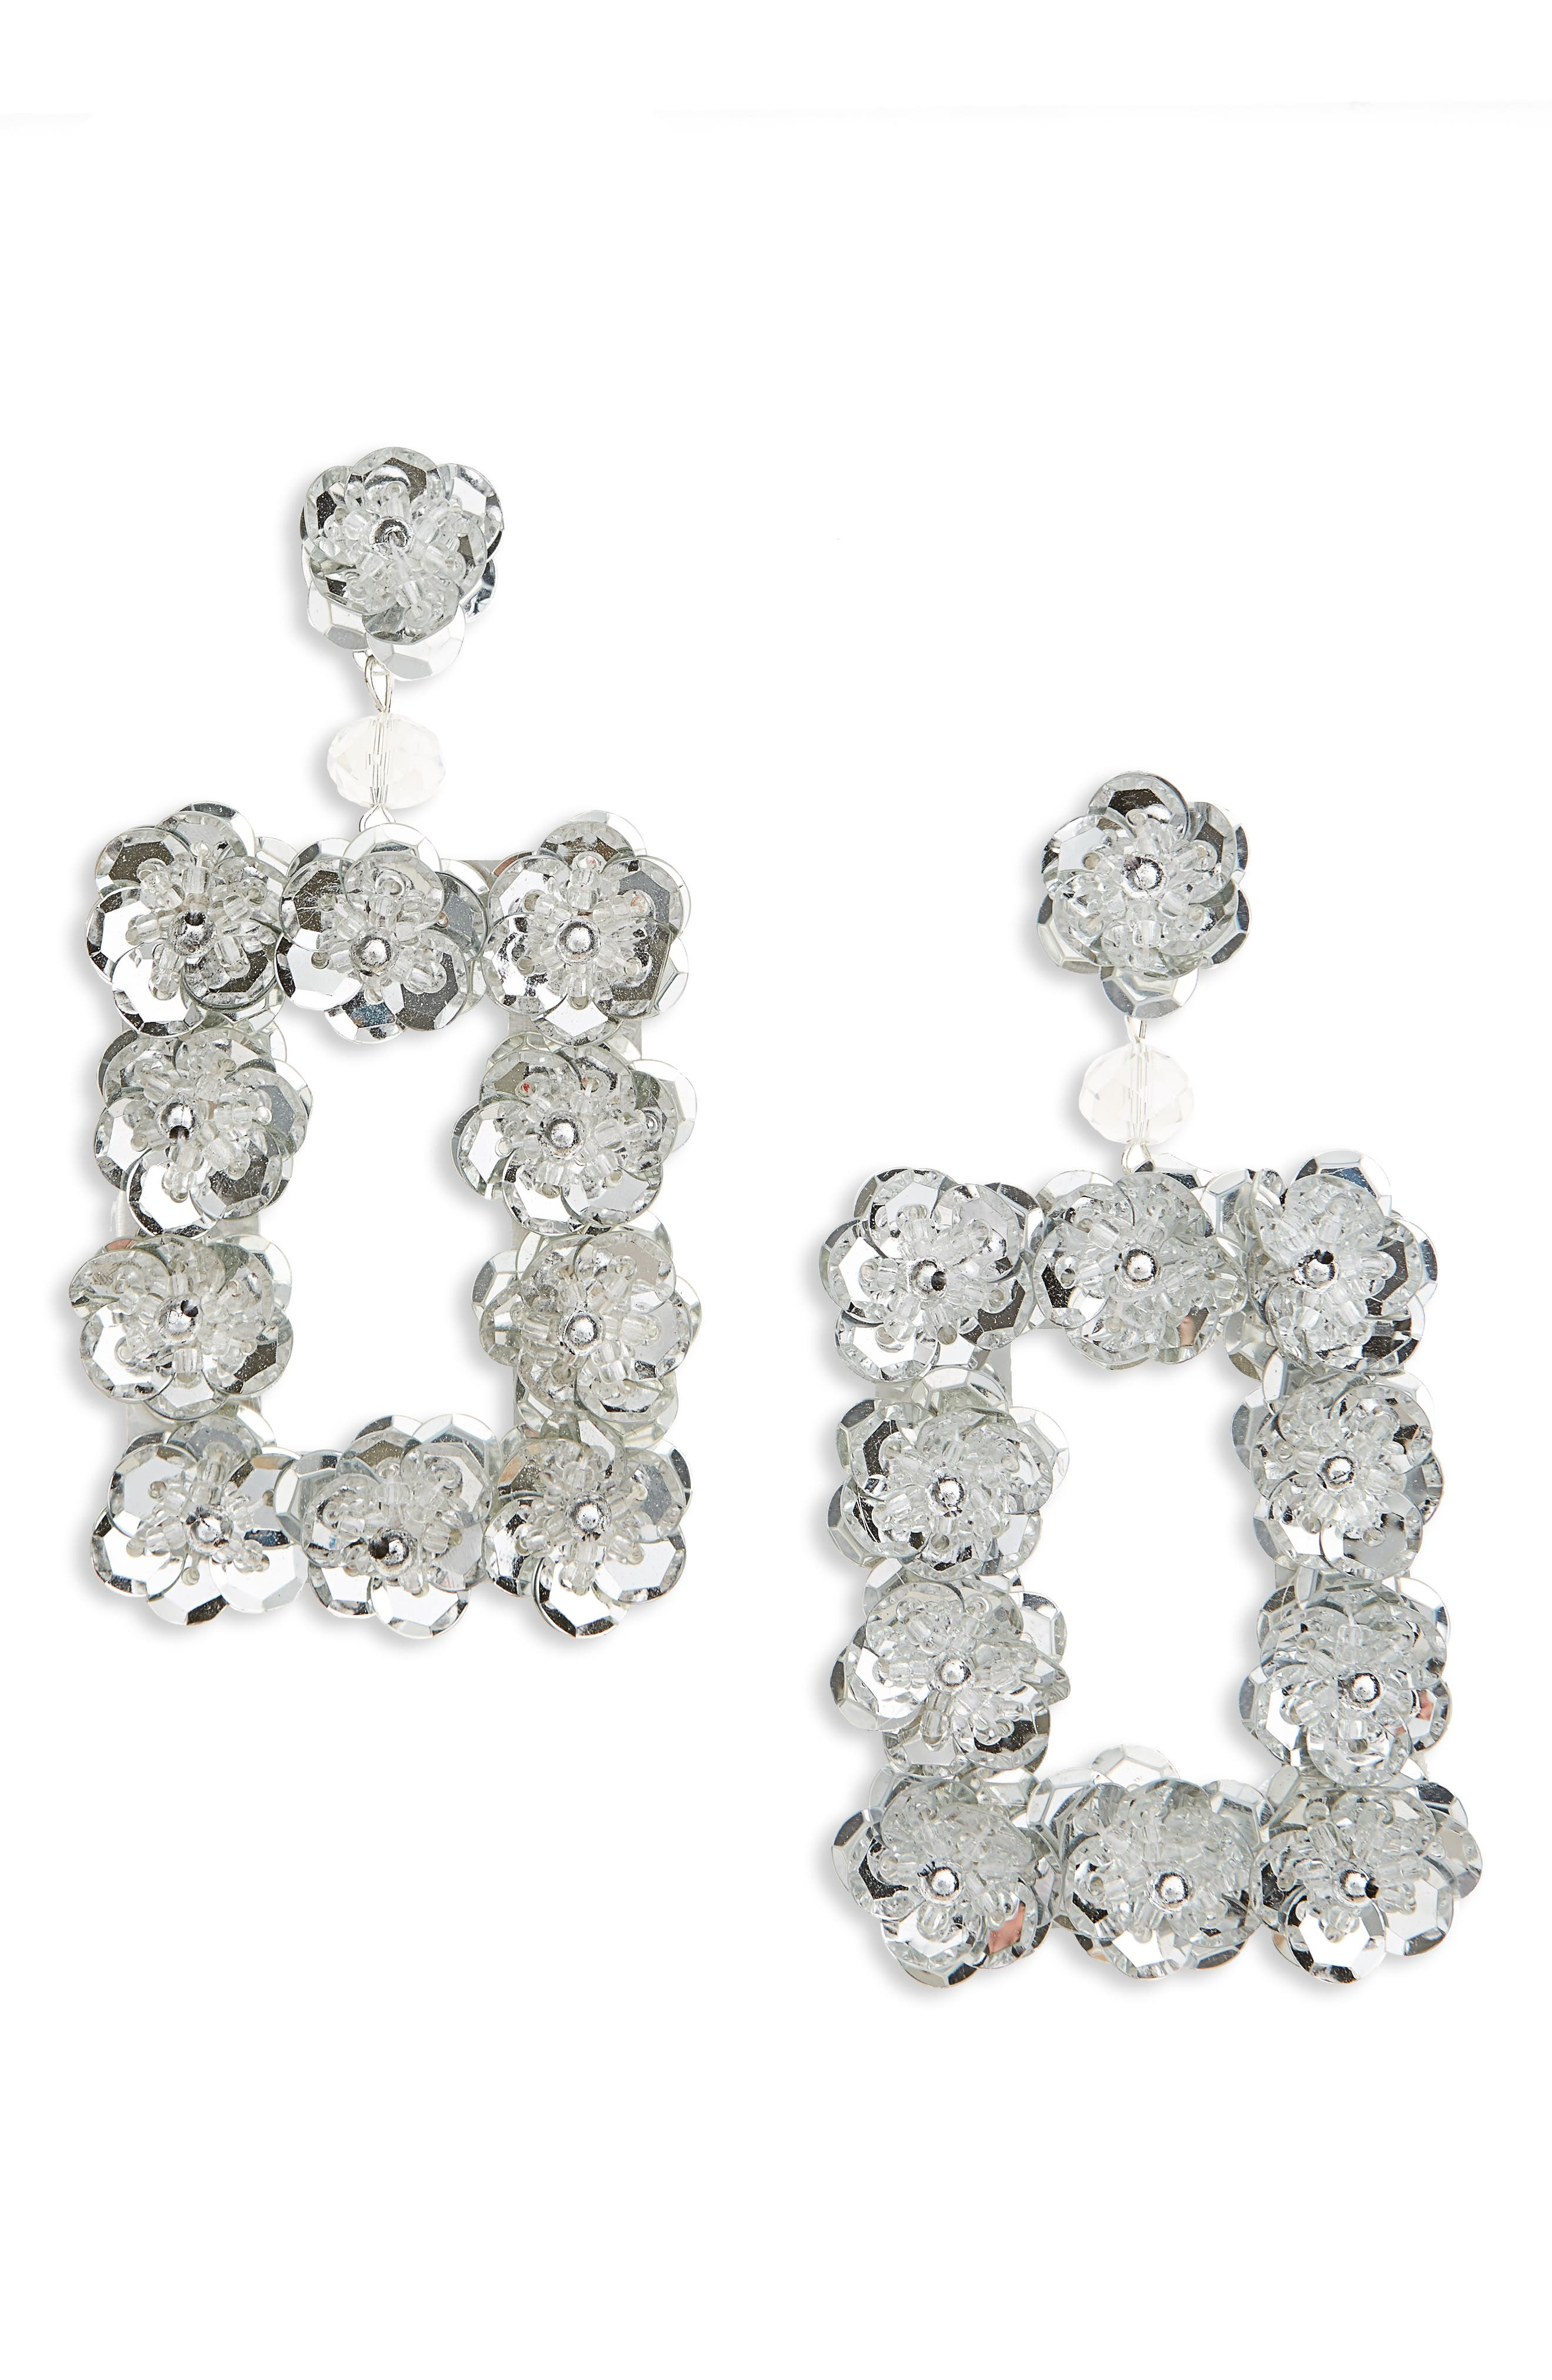 Opulent Floral Square Earrings,                         Main,                         color, Silver/ Crystal